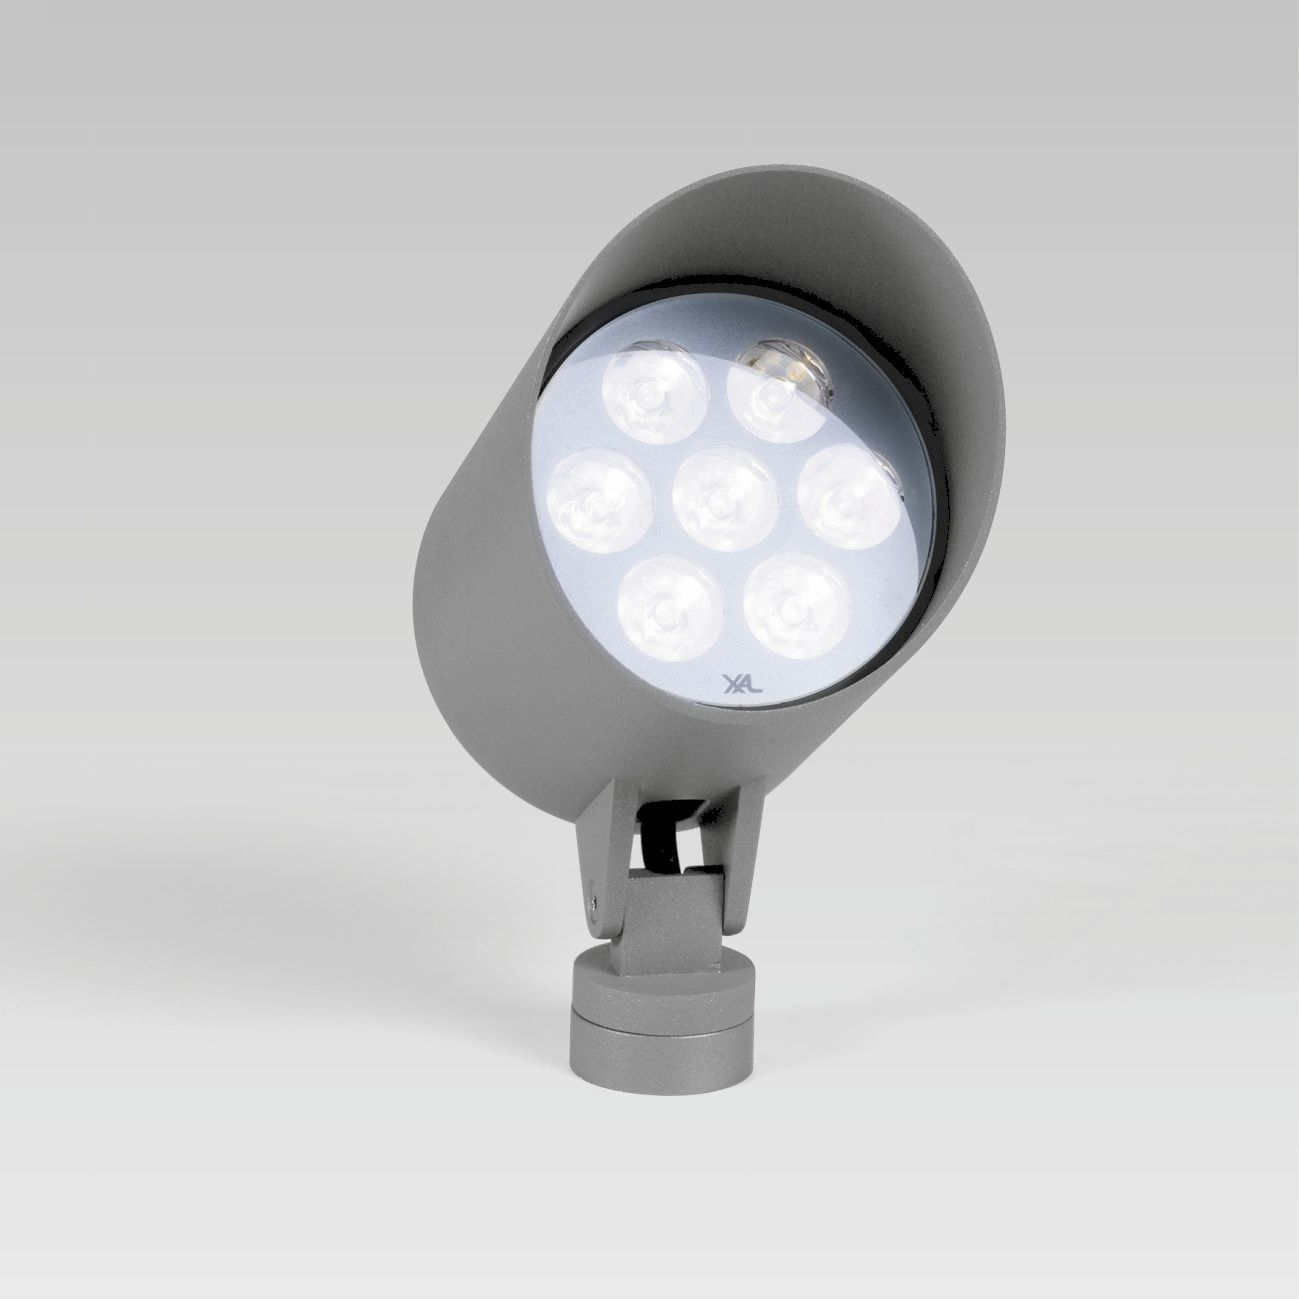 Floor mounted spotlight wall mounted outdoor led solis floor mounted spotlight wall mounted outdoor led aloadofball Image collections